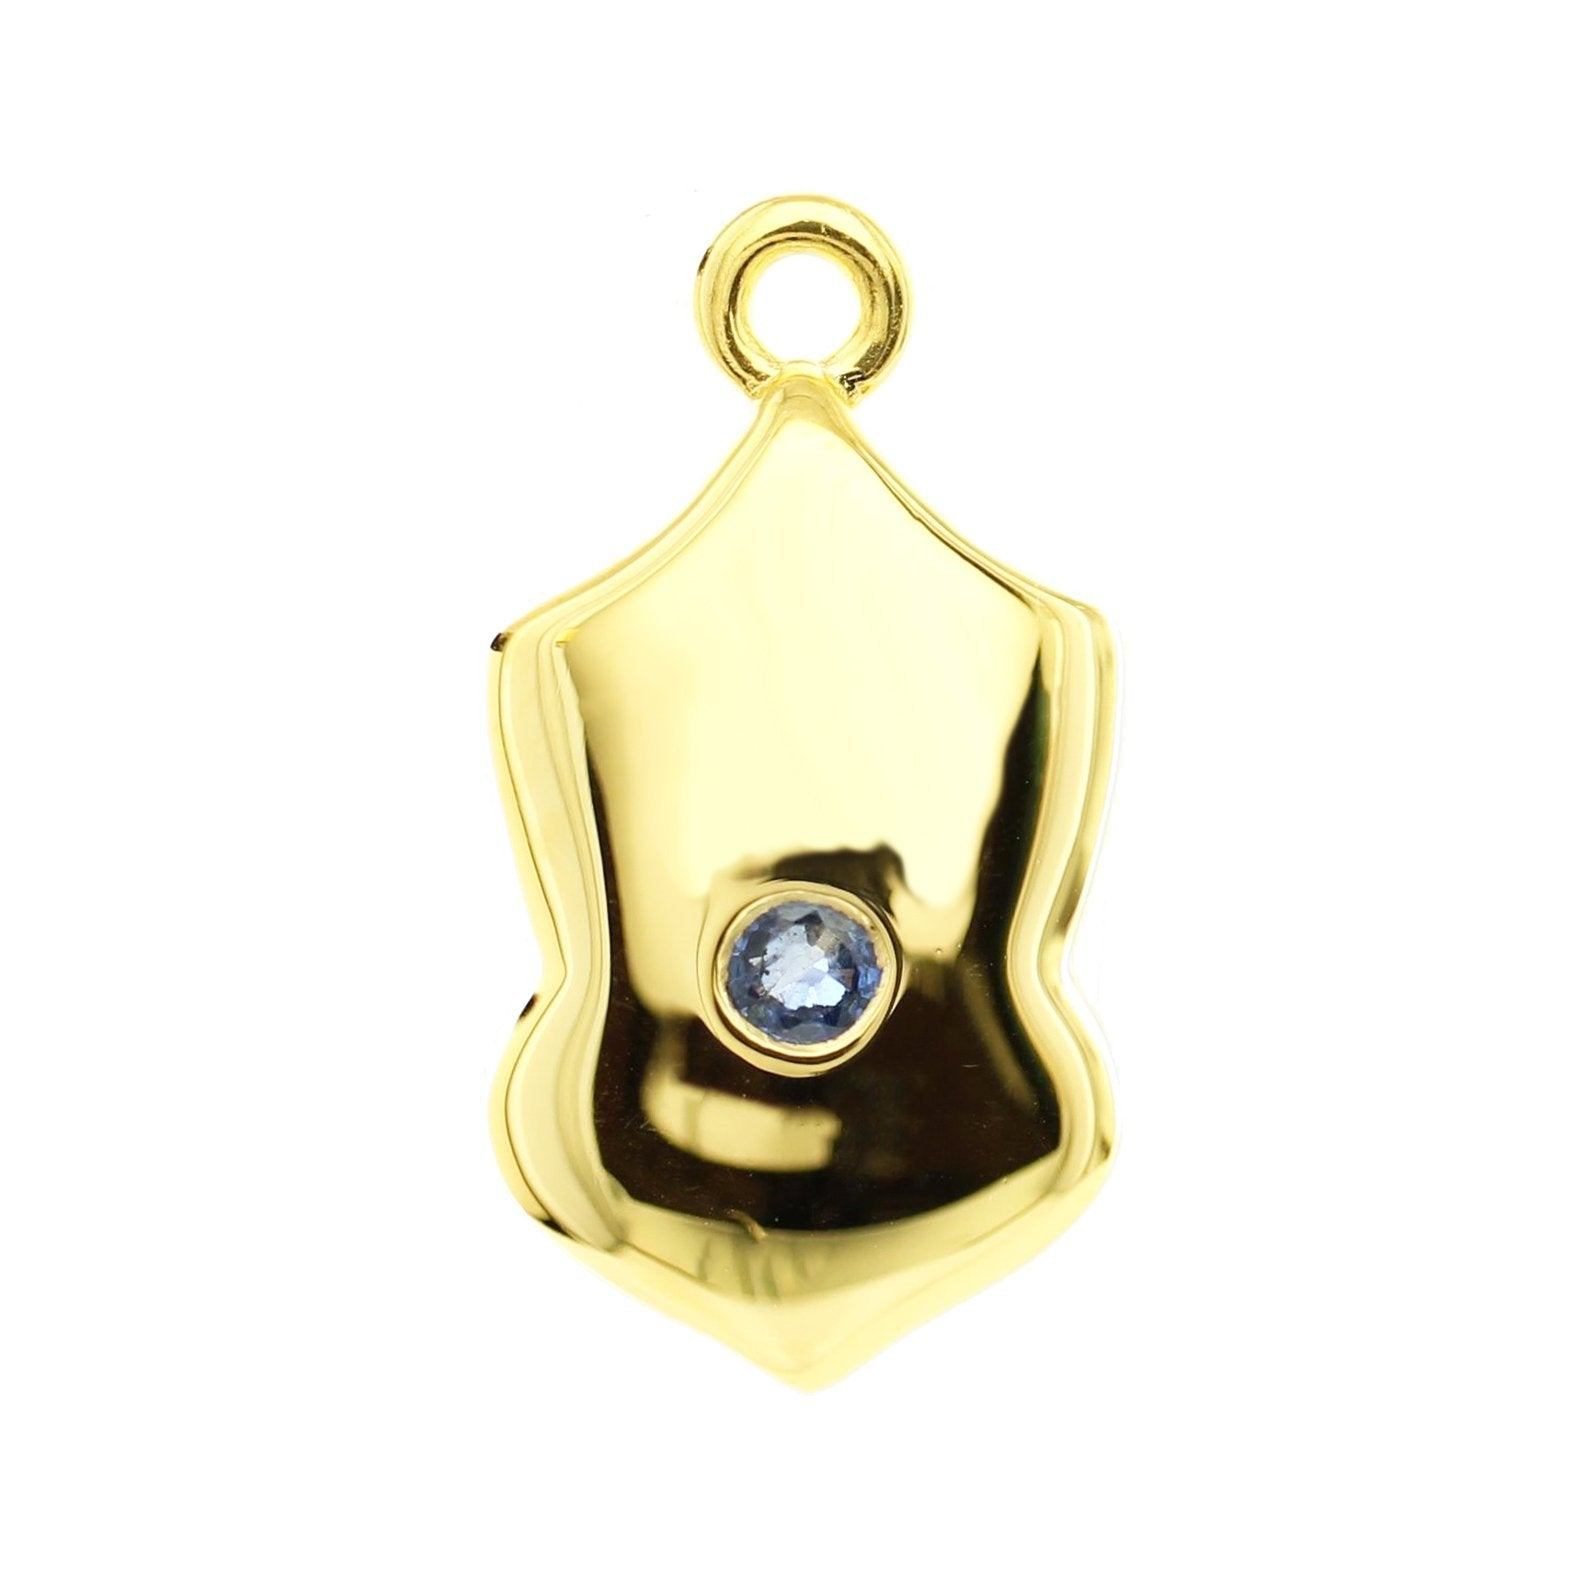 LEGACY SEPTEMBER BIRTHSTONE SHIELD ICON - SAPPHIRE & GOLD - SO PRETTY CARA COTTER